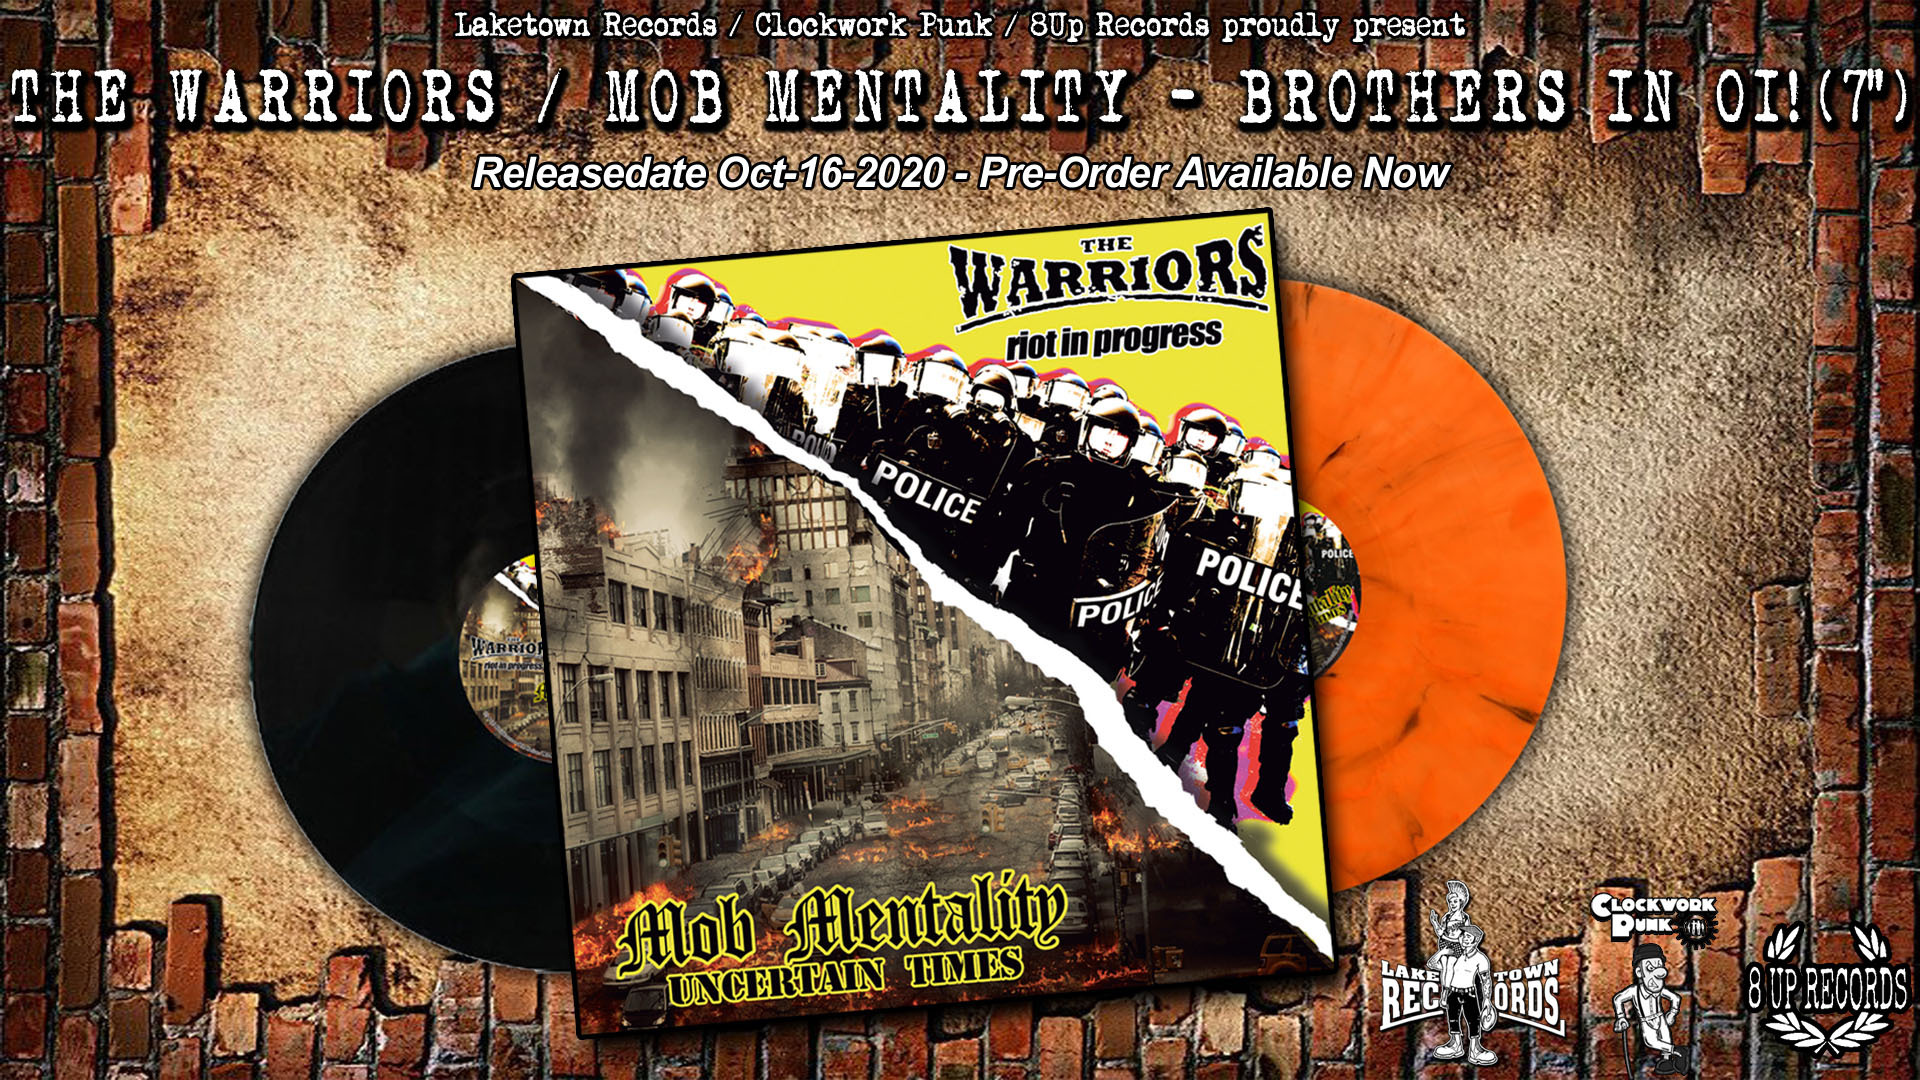 the_warriors_mob_mentality_brothers_in_oi